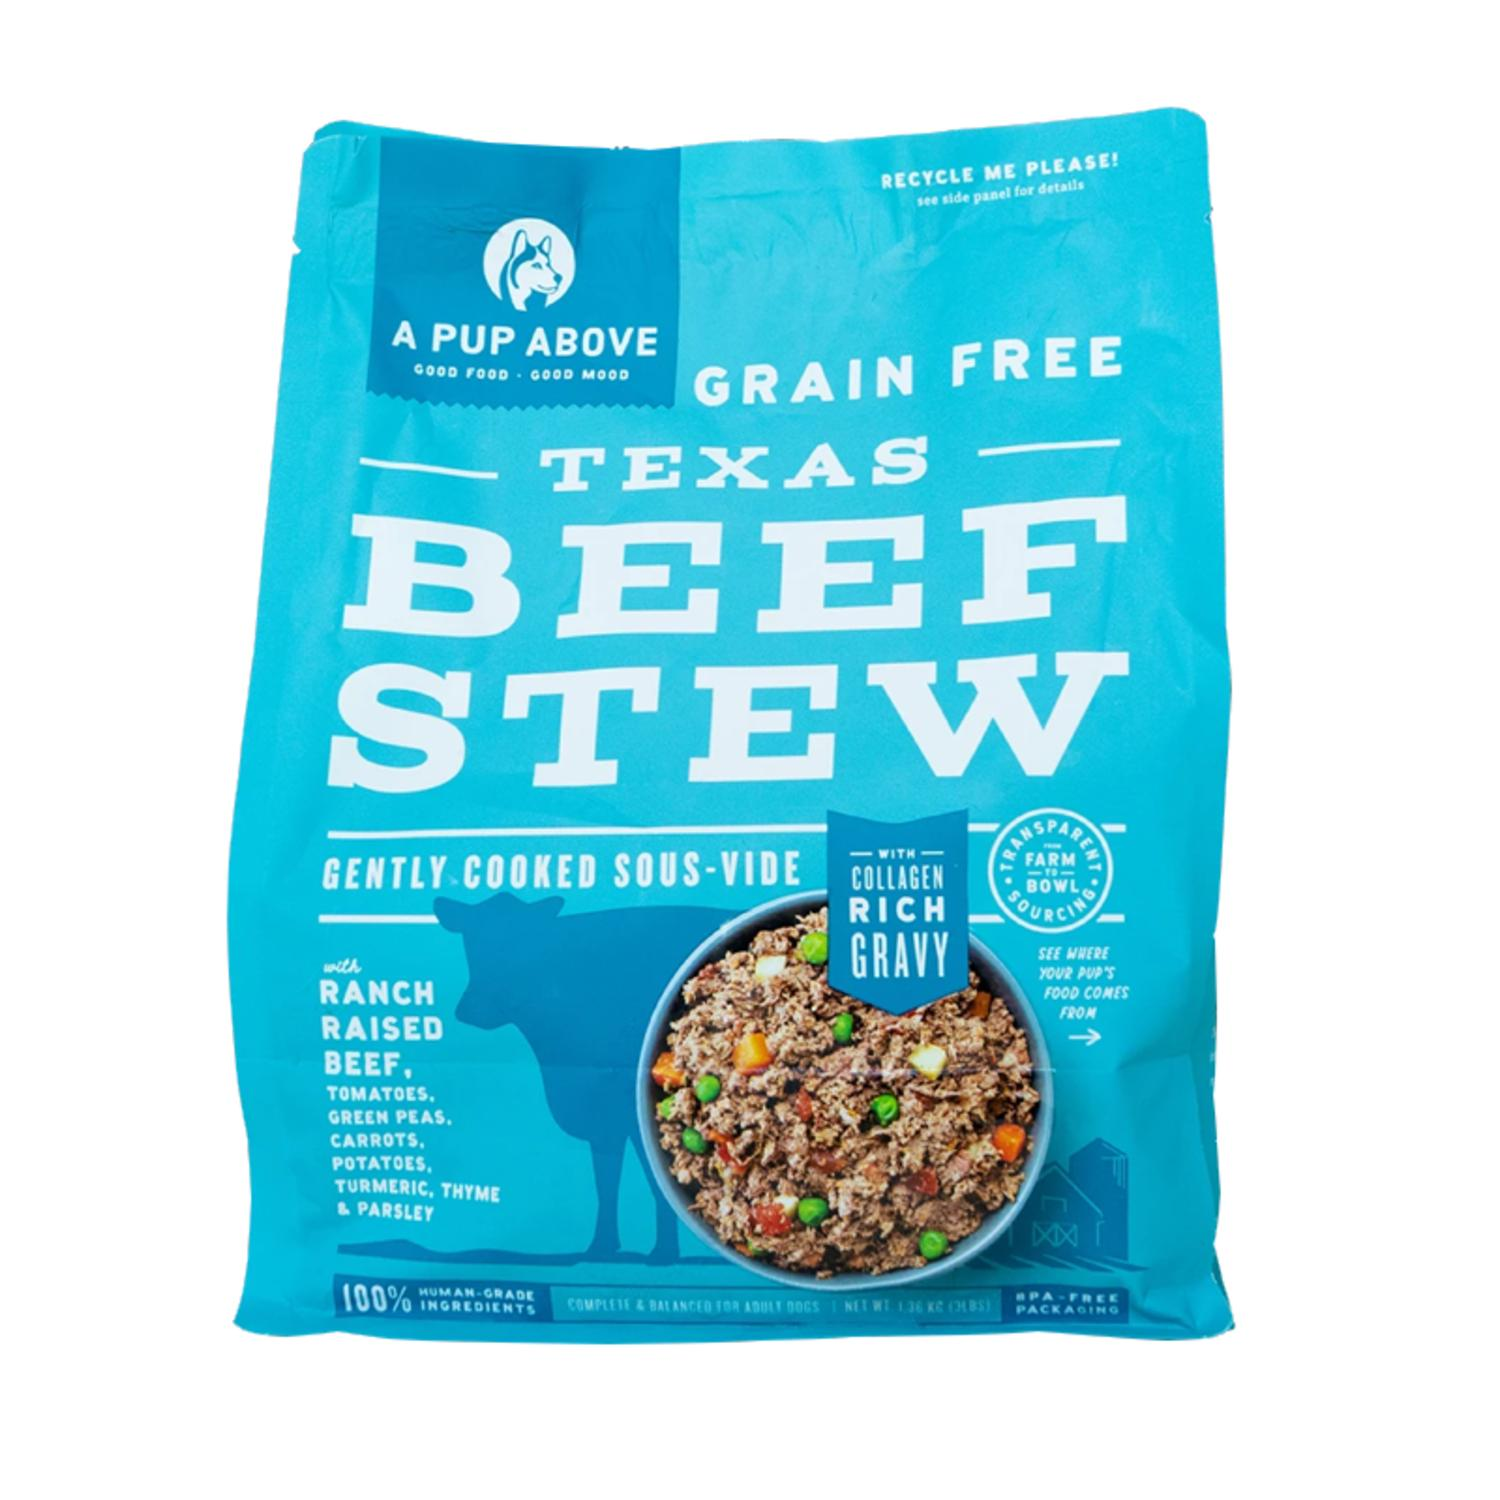 A Pup Above Texas Beef Stew Grain-Free Frozen Dog Food, 3-lb